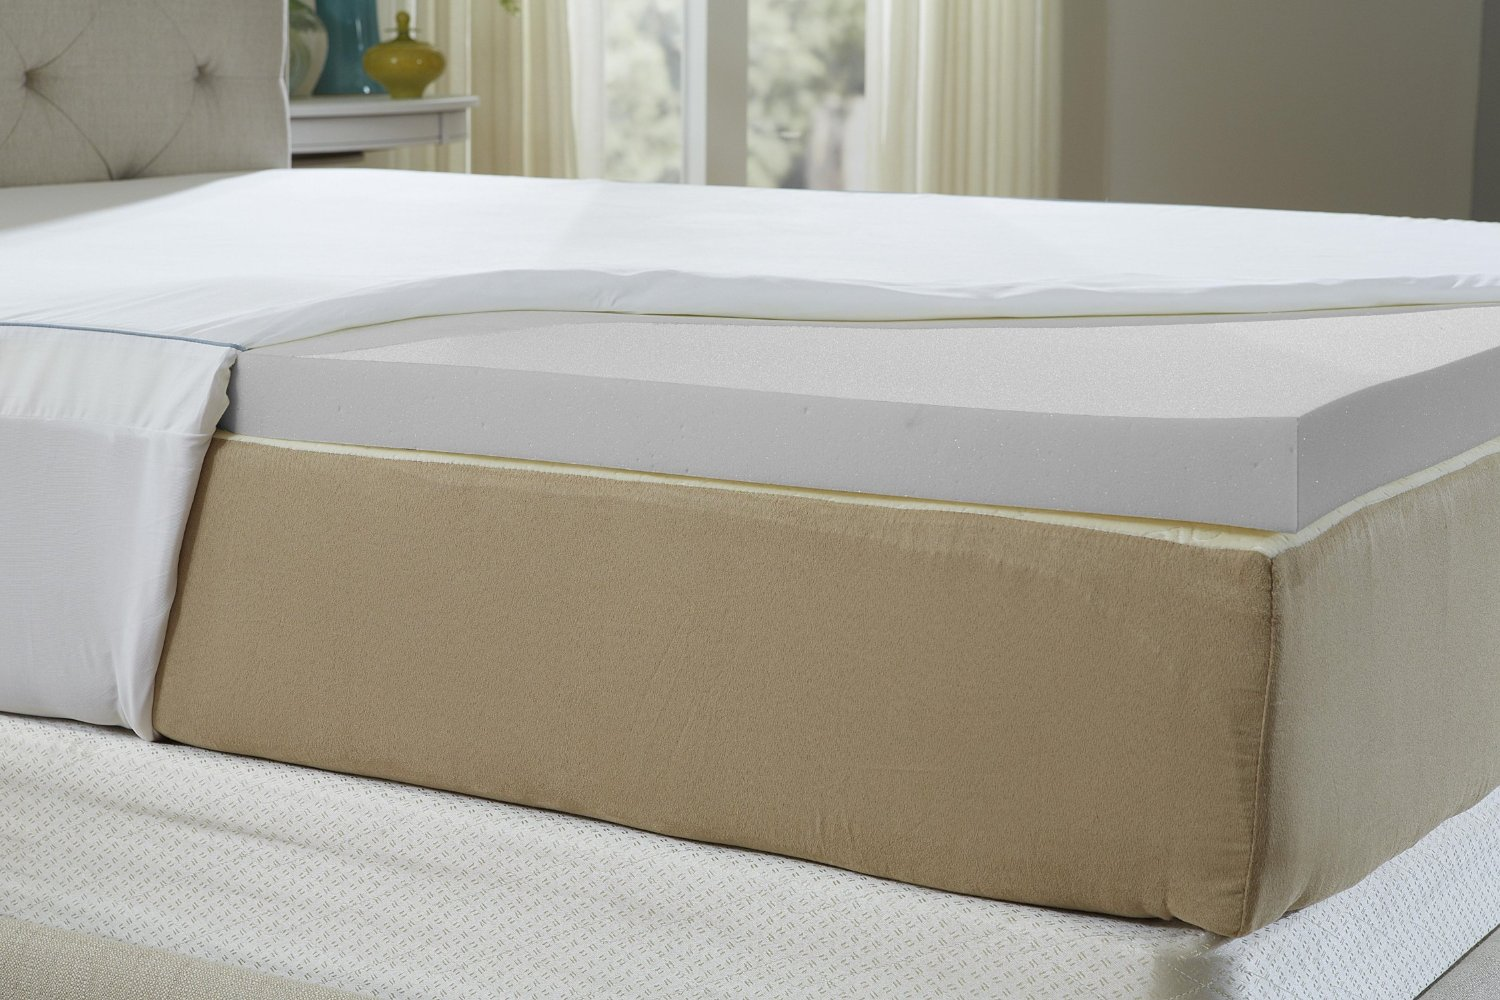 tempurpedic mattress pad. The Cool IQ 2.5-inch Memory Foam Topper: Smart Buy? Tempurpedic Mattress Pad N